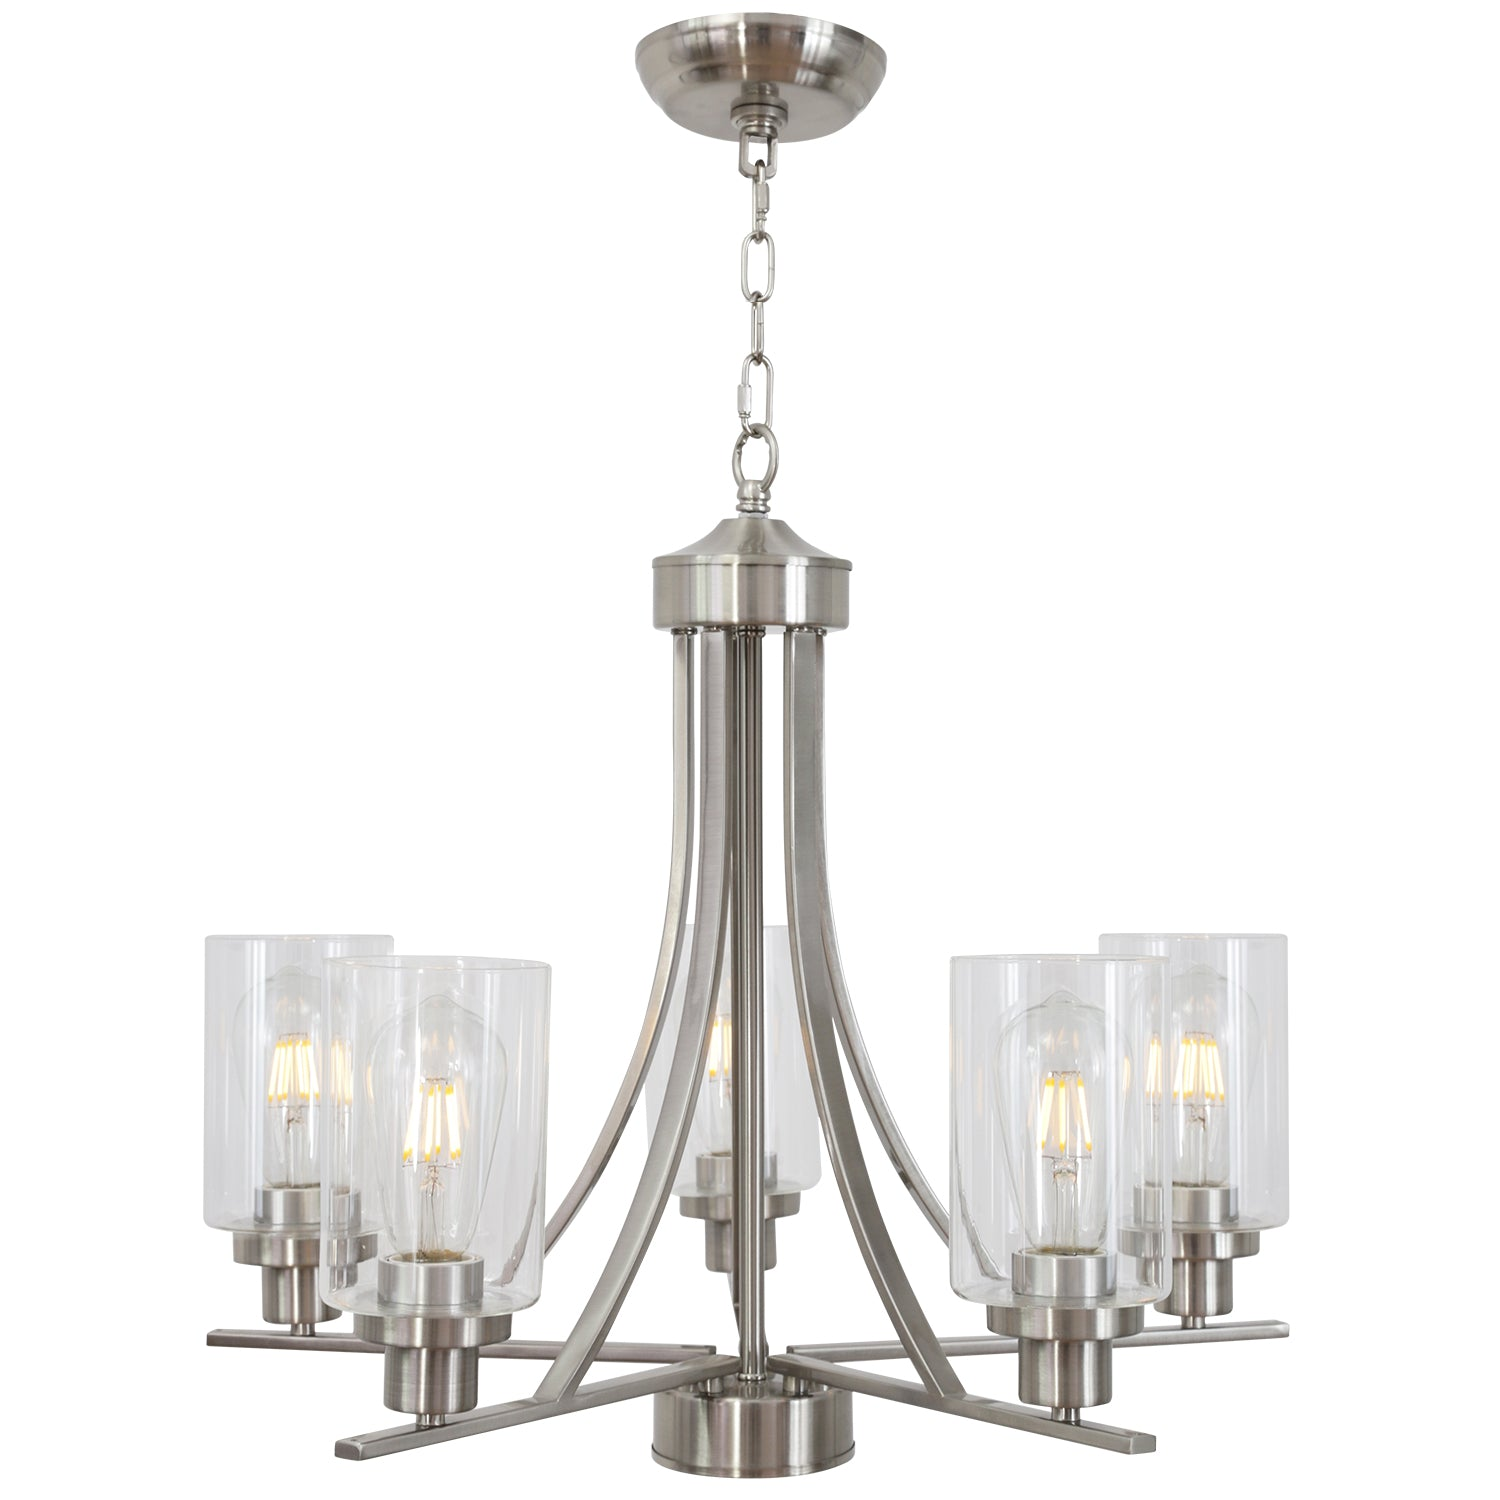 Bonlicht Chandelier Lighting 5 Light Brushed Nickel With Clear Glass Shade